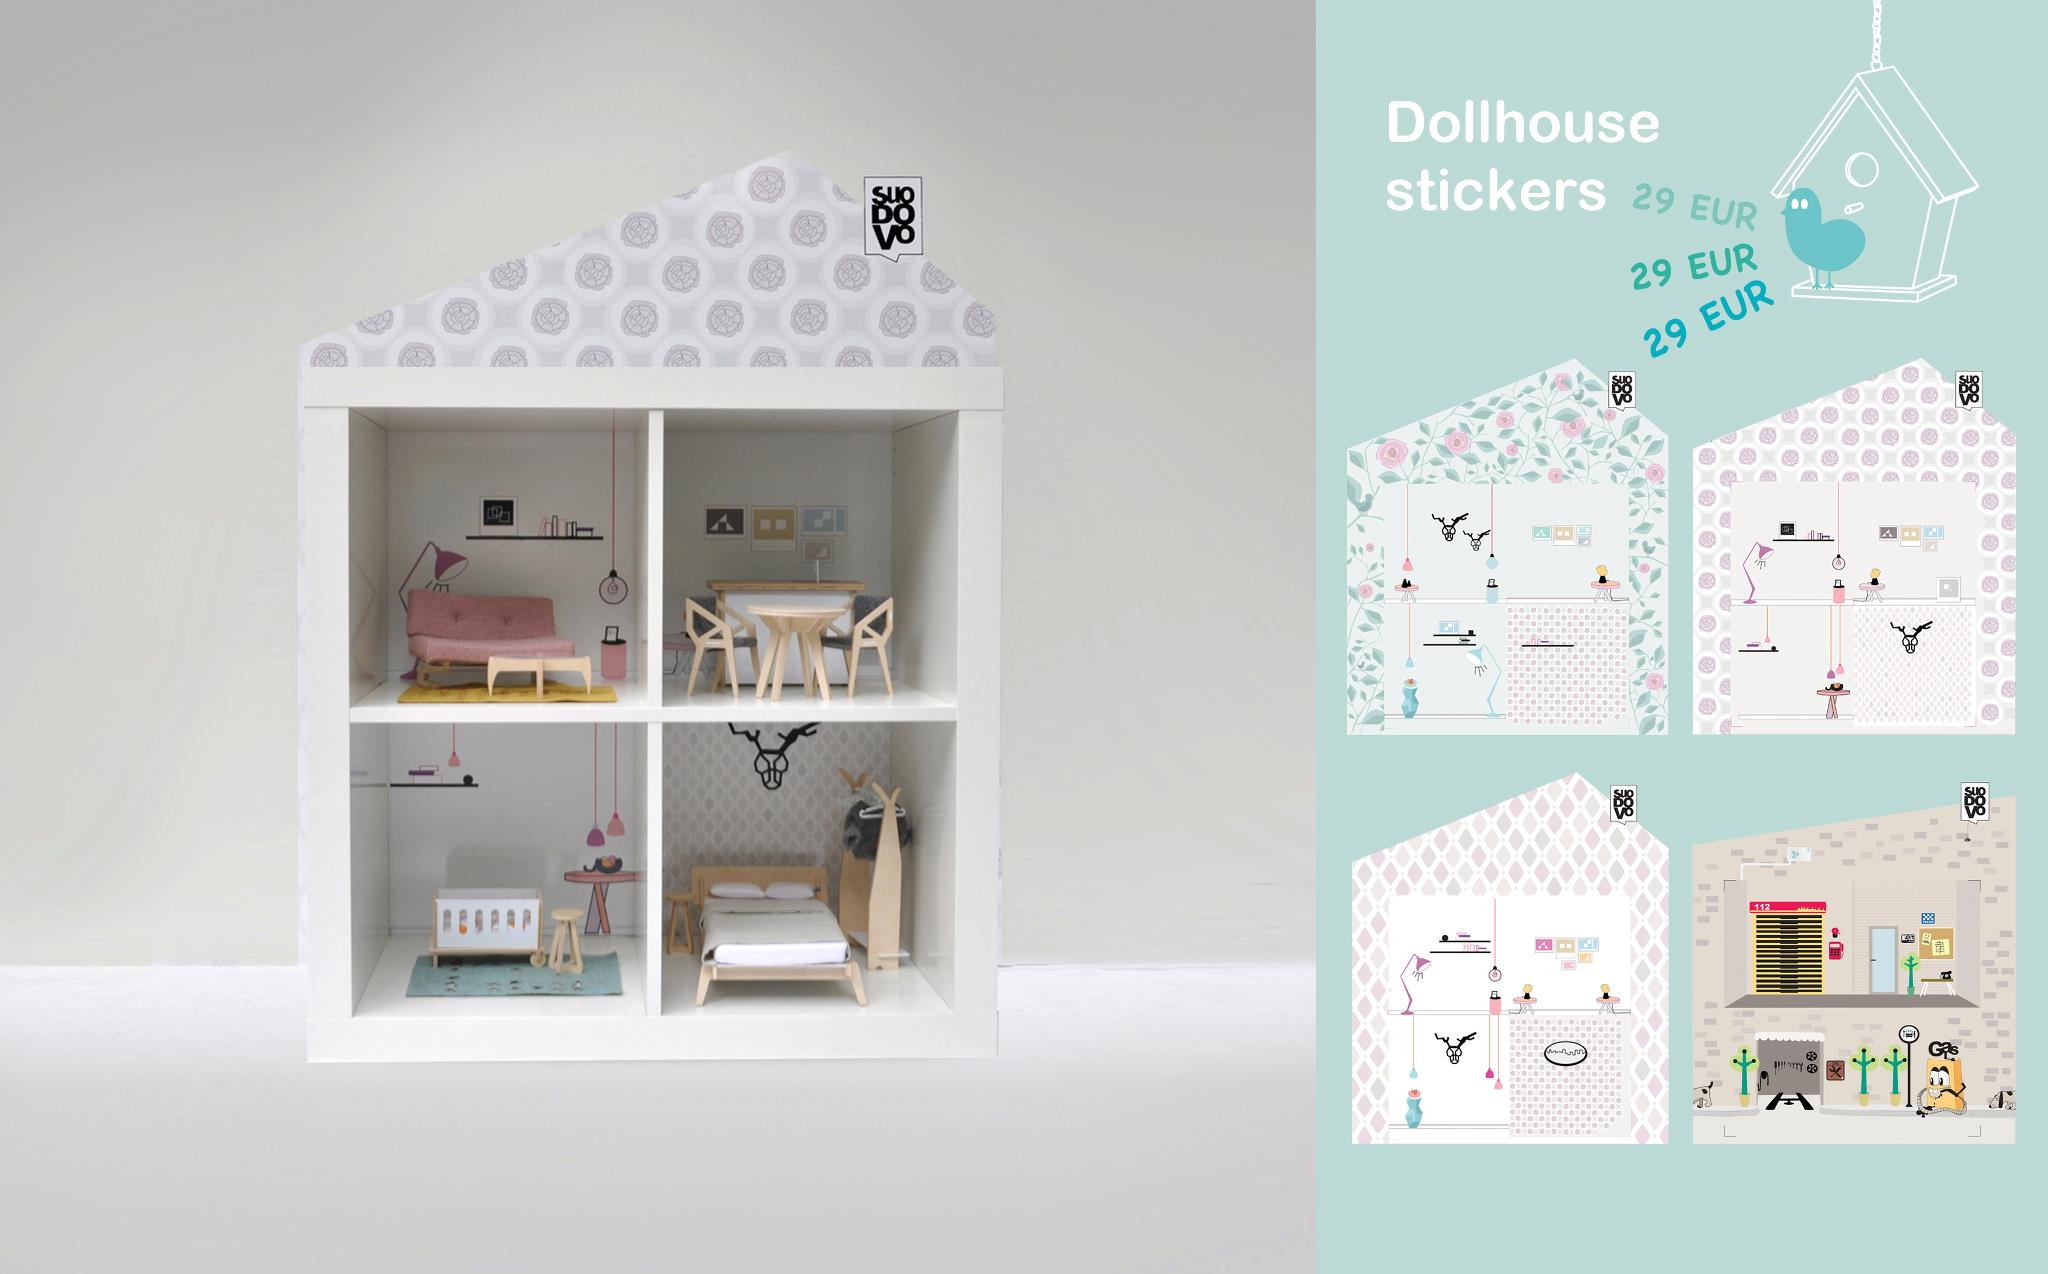 joli jouet maison de poup e cerise et petits pois. Black Bedroom Furniture Sets. Home Design Ideas